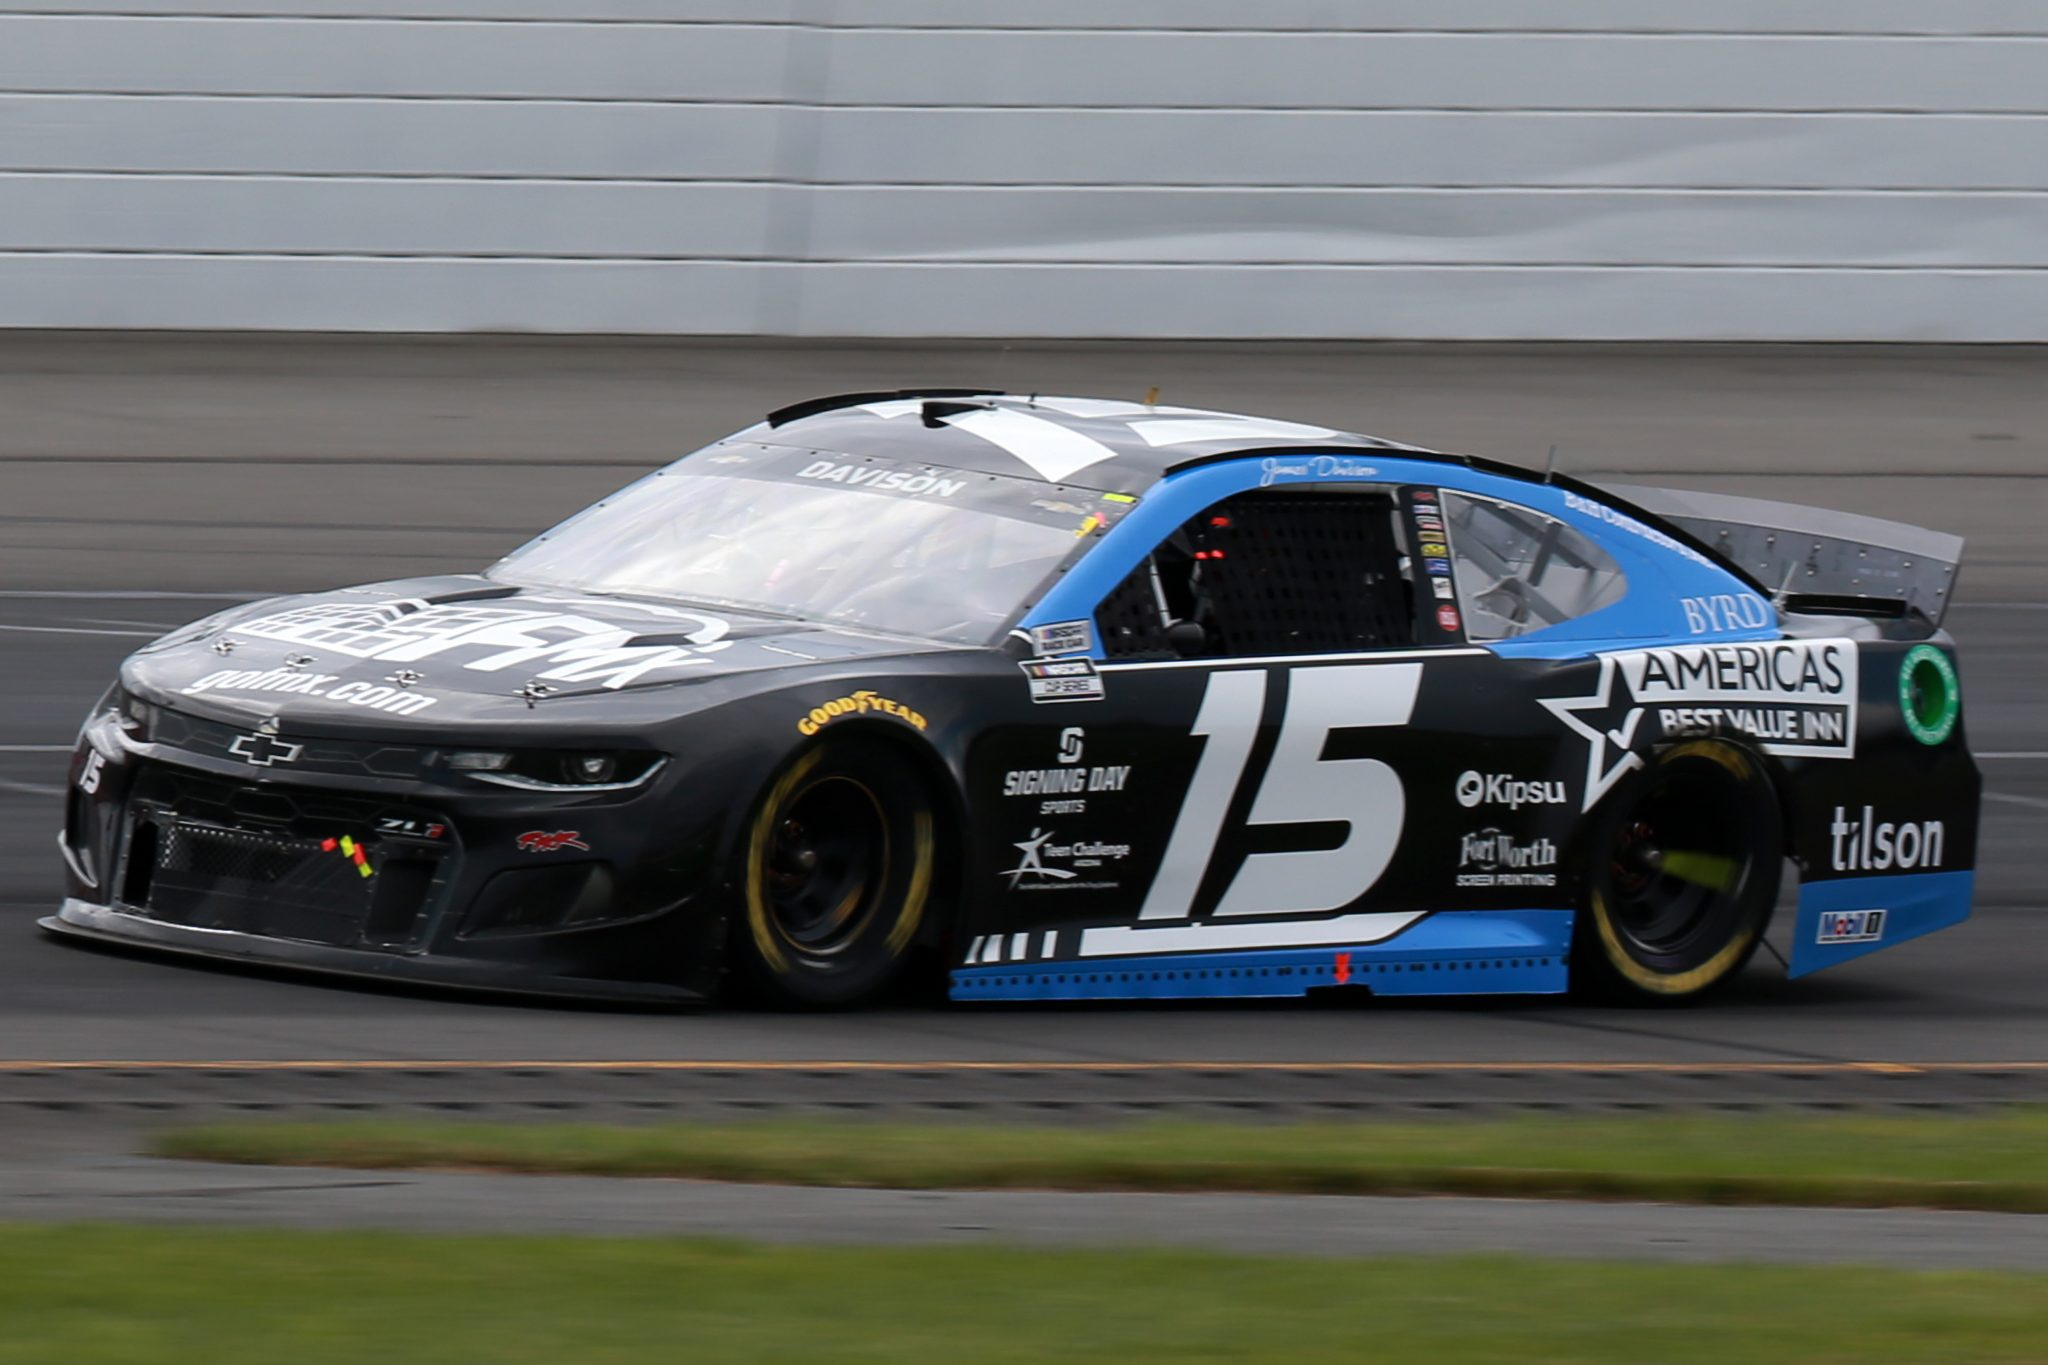 LONG POND, PENNSYLVANIA - JUNE 26: James Davison, driver of the #15 Chevrolet, drives during the NASCAR Cup Series Pocono Organics CBD 325 at Pocono Raceway on June 26, 2021 in Long Pond, Pennsylvania. (Photo by Sean Gardner/Getty Images)   Getty Images